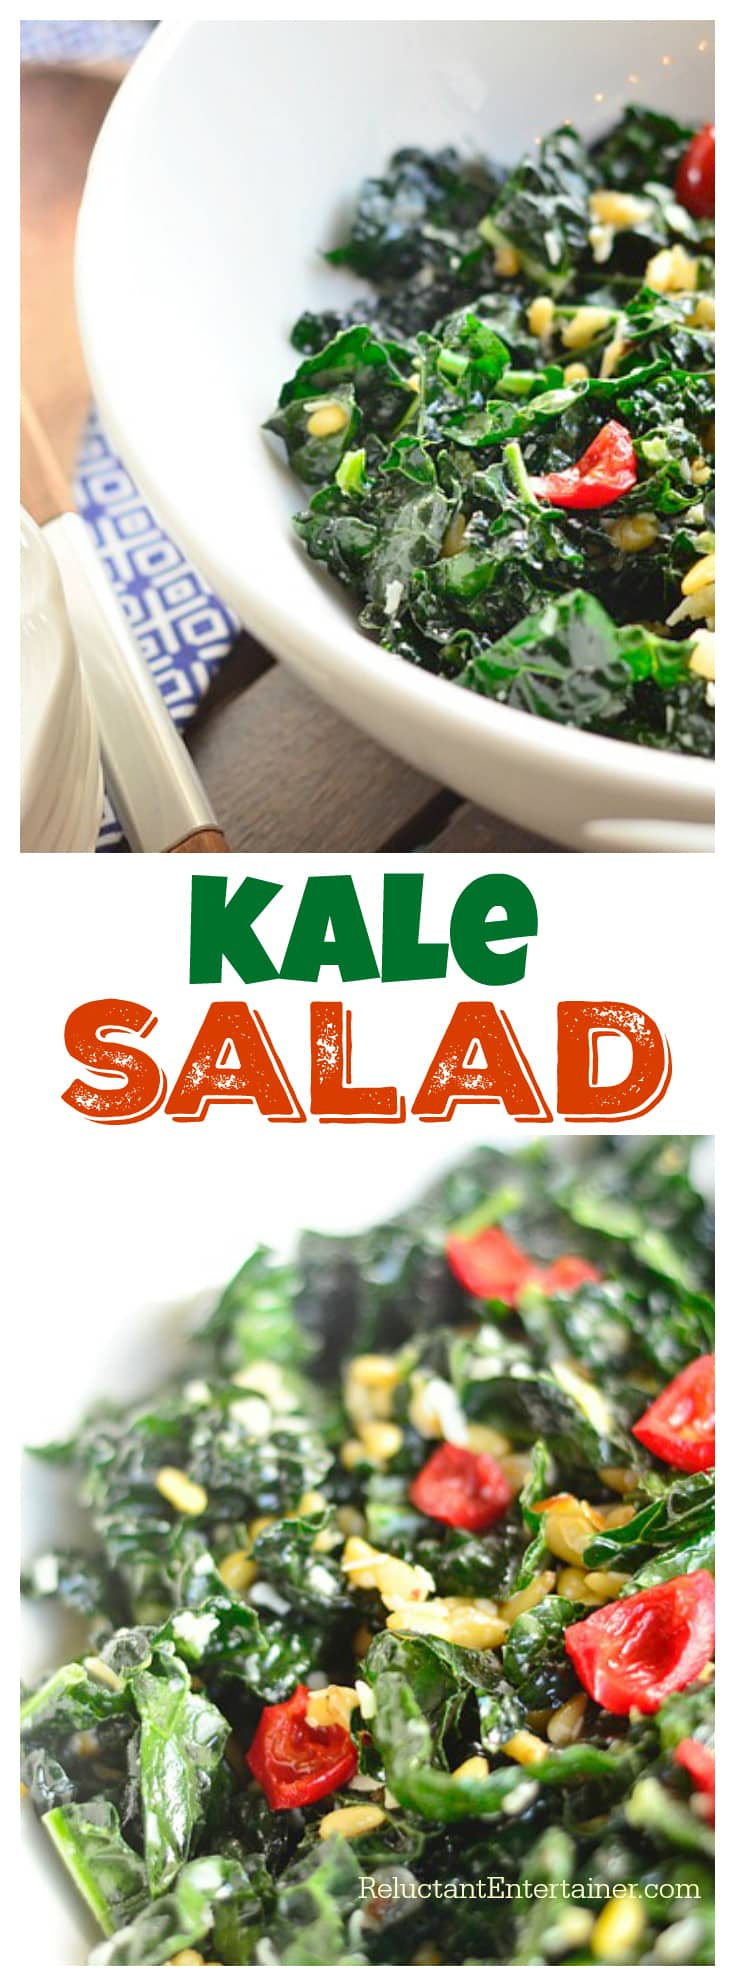 This Kale Salad has delicious flavors of garlic, shallots, pinenuts, sweet red peppers, and curly kale, with a lemon juice and Parmesan cheese dressing!